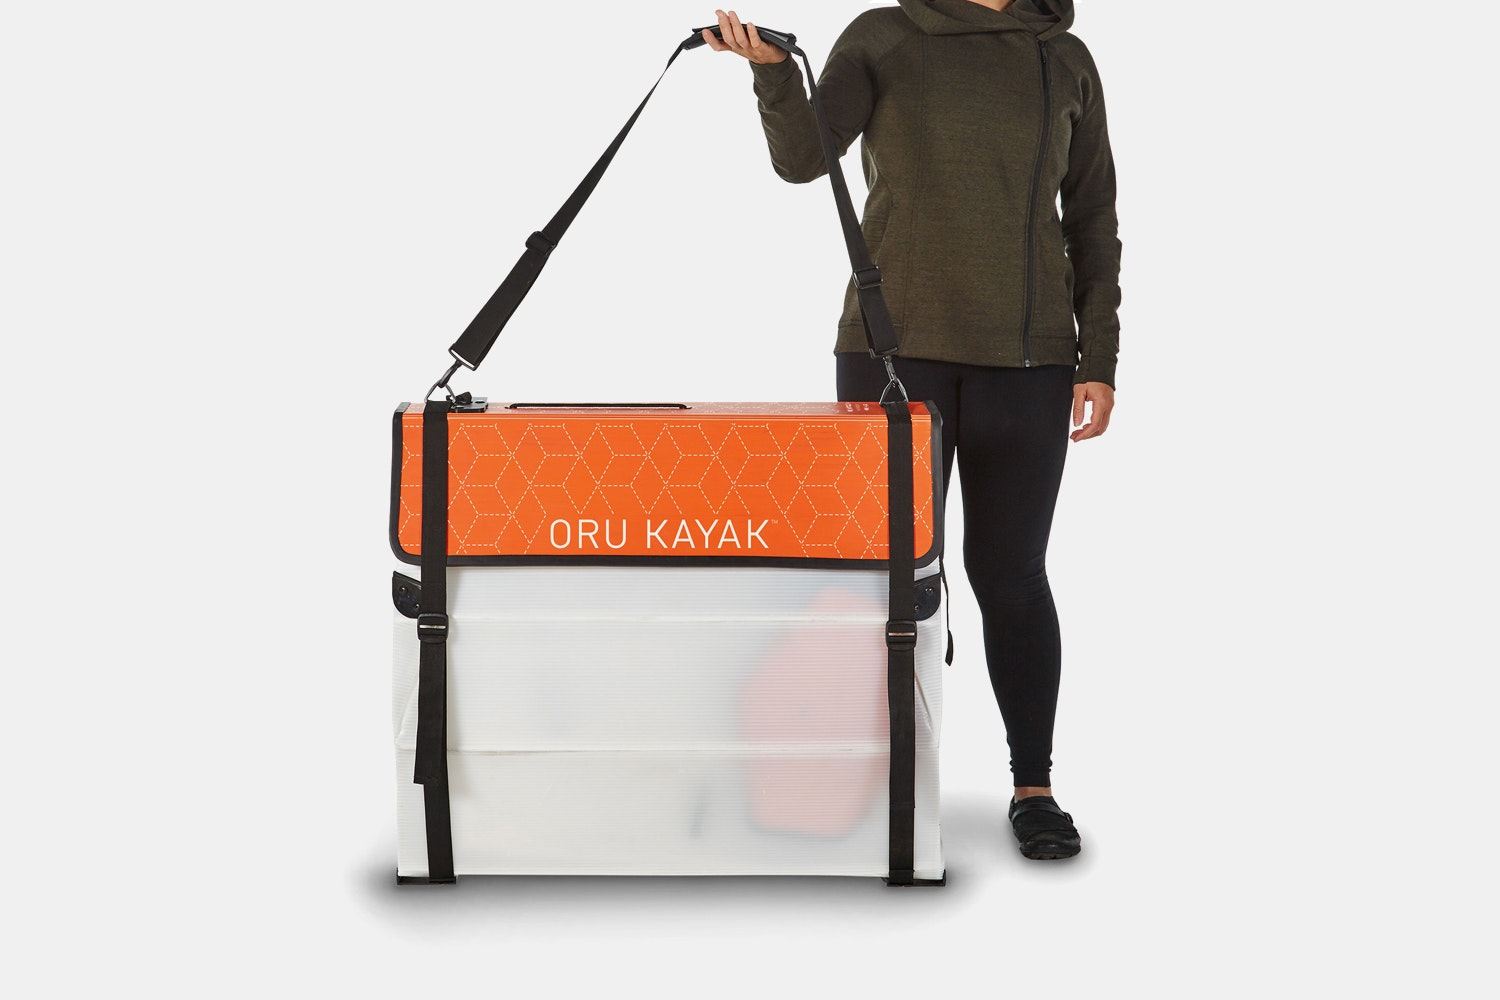 Oru Foldable Kayak Bundle